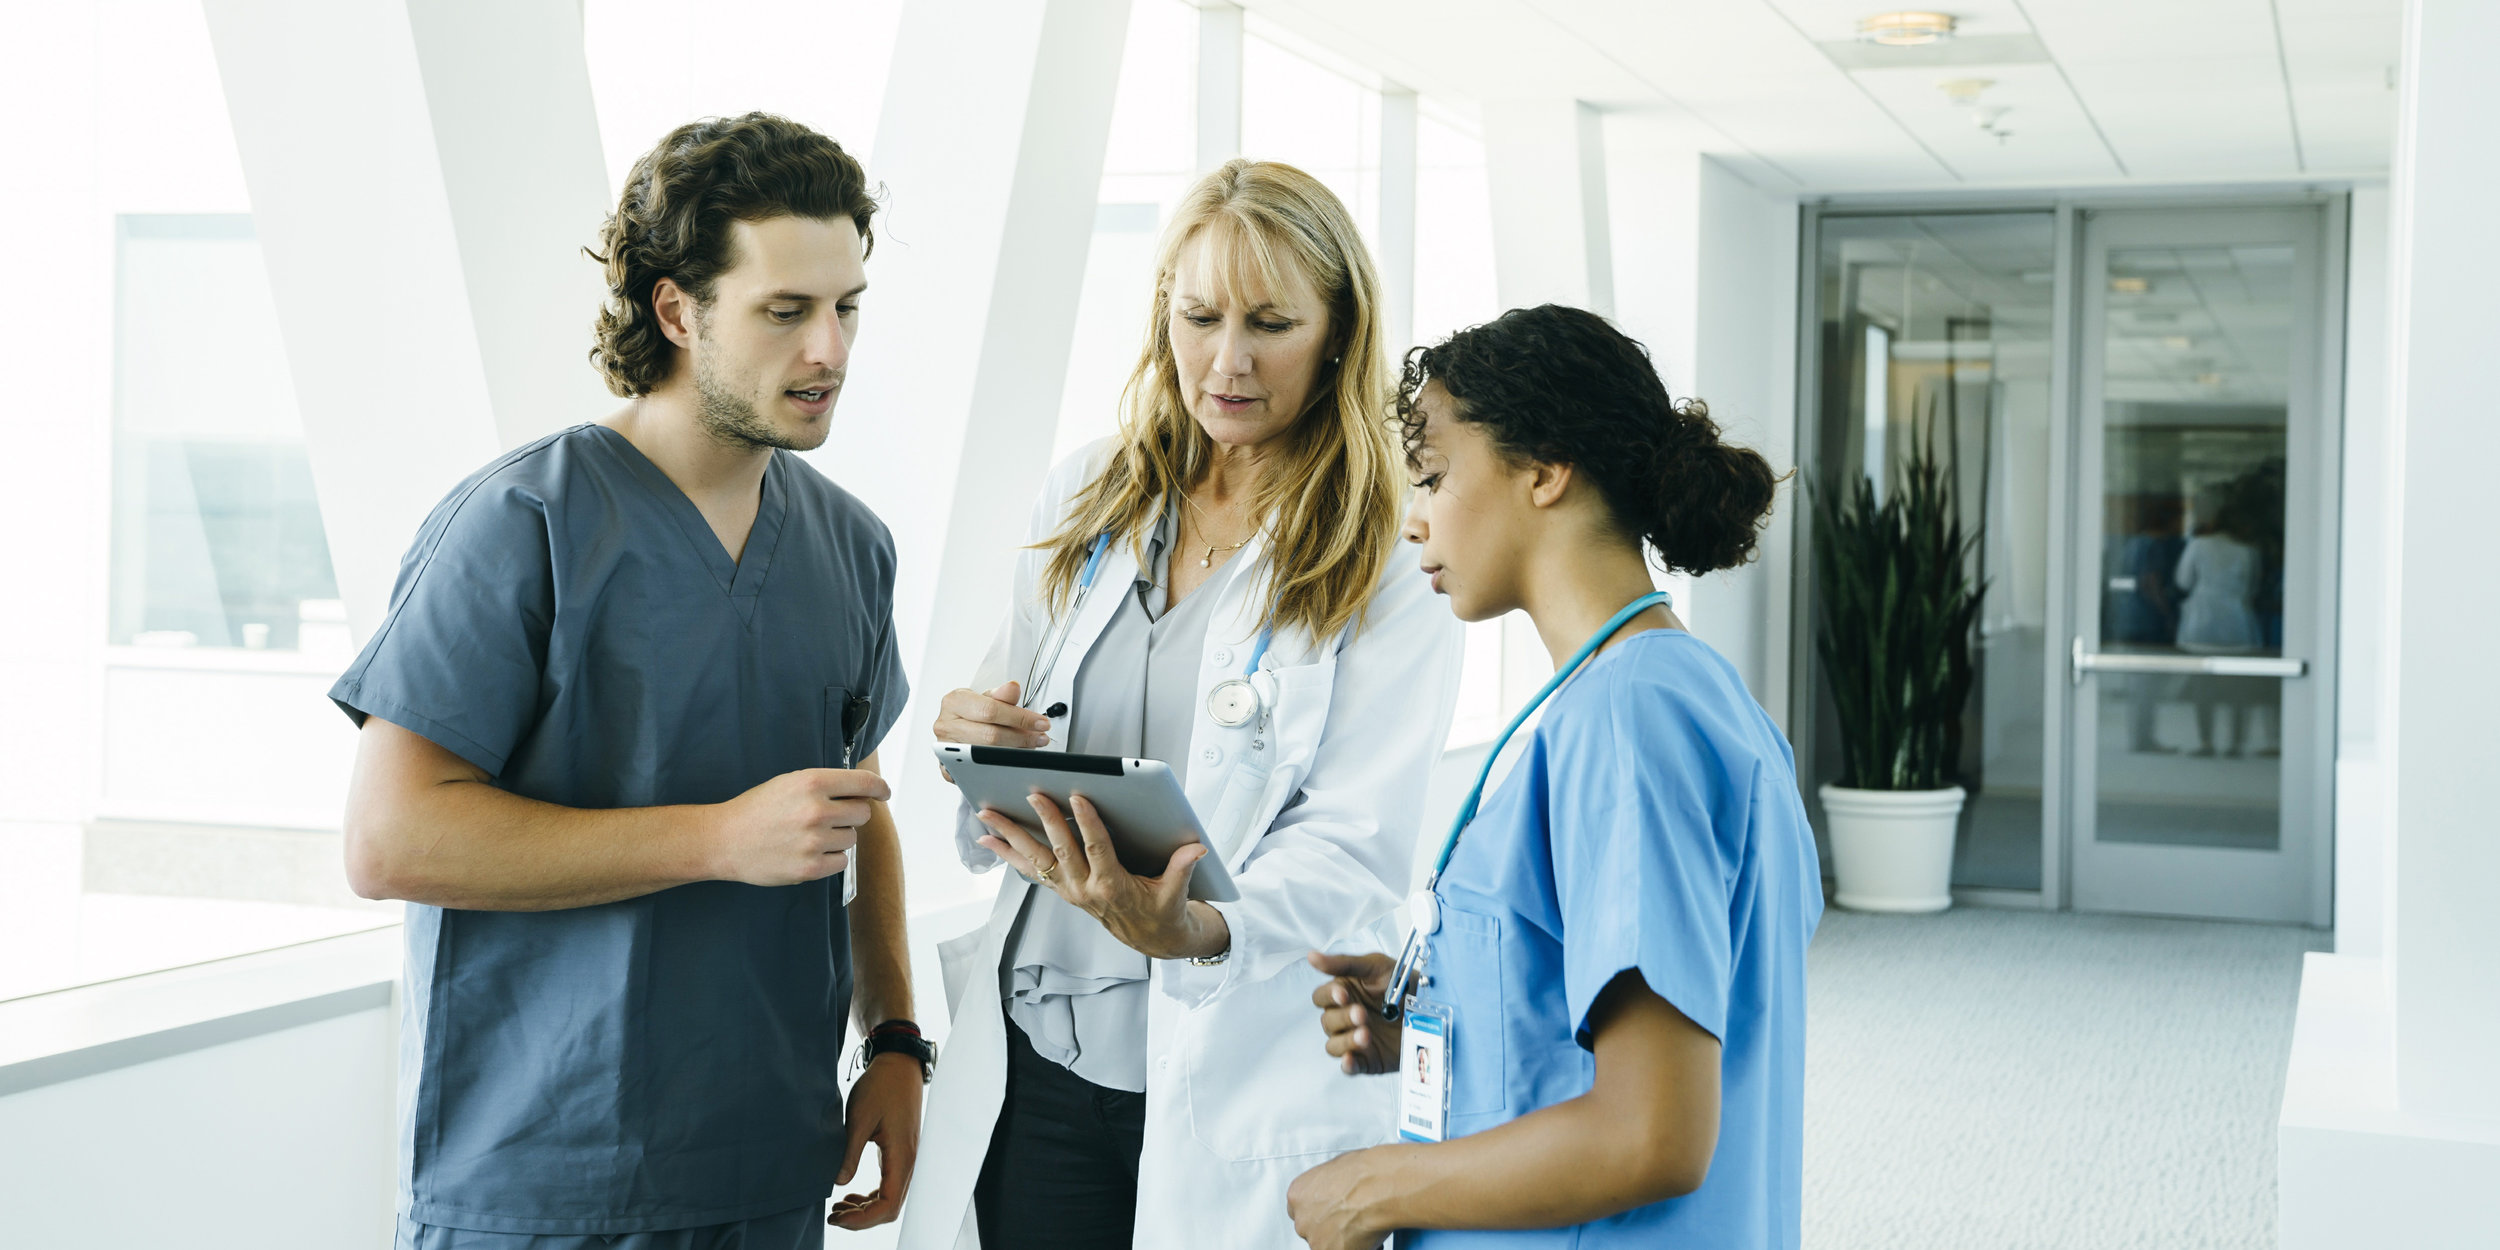 Health Care/Ecclesiastical - We assist medical offices and facilities, veterinary clinics, churches, ministry buildings, and more to integrate smarter building automation solutions.